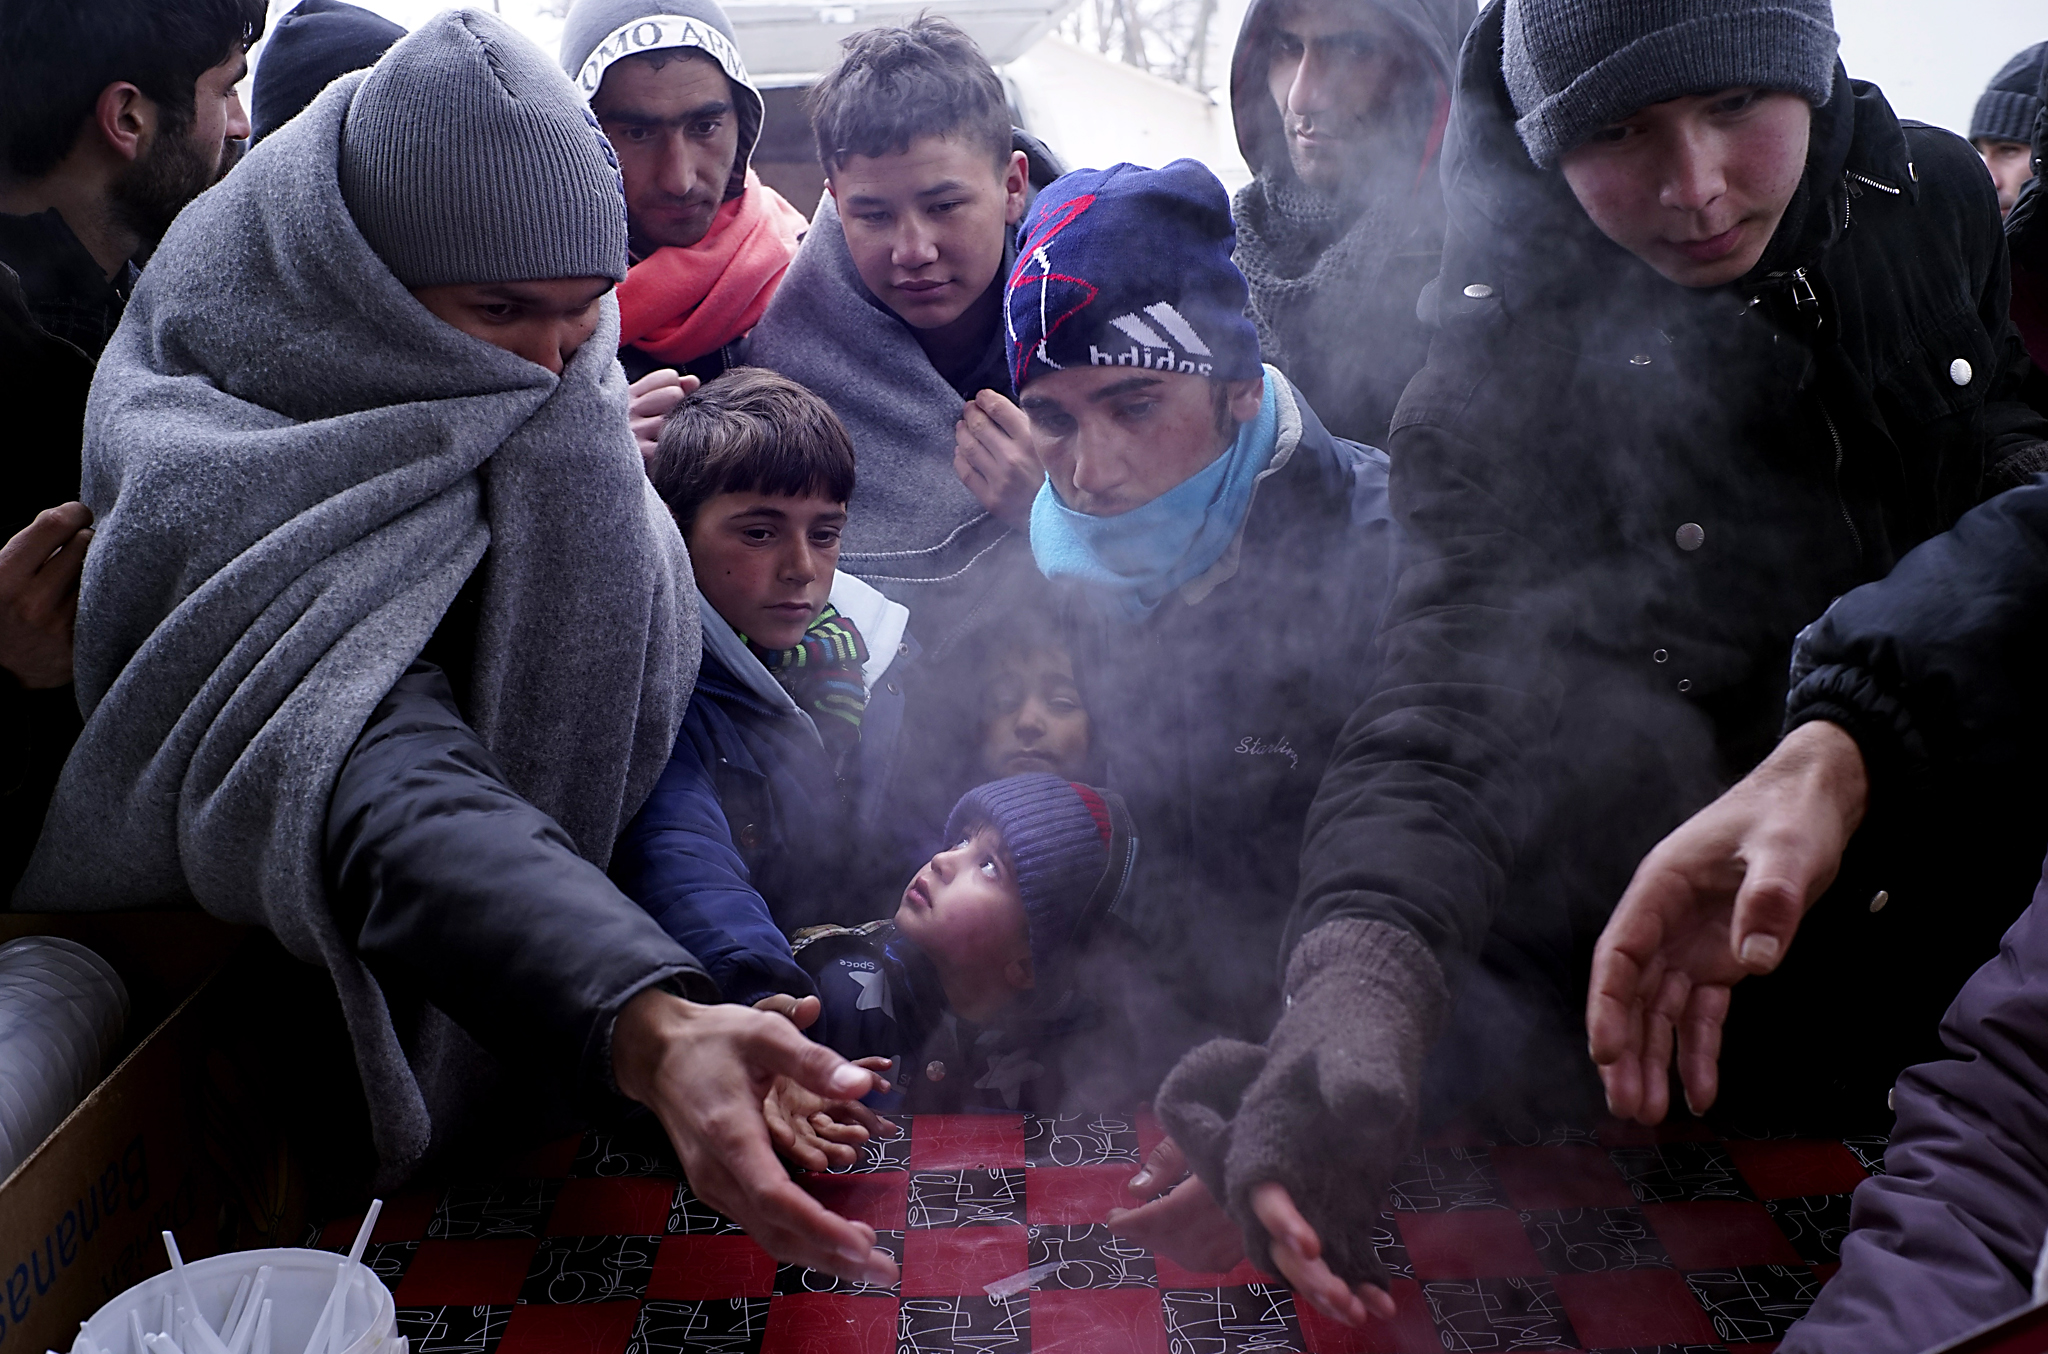 Migrants Wait For Trains In Sub Zero Temperatures On The Serbian Border...PRESEVO, SERBIA - JANUARY 26:  A group of migrant children wait for hot food in sub zero temperatures near the Serbian-Croatian border on January 26, 2016 in Presevo, Serbia.  Migrants have been braving sub zero temperatures as they cross the border from Macedonia into Serbia. (Photo by Milos Bicanski/Getty Images)